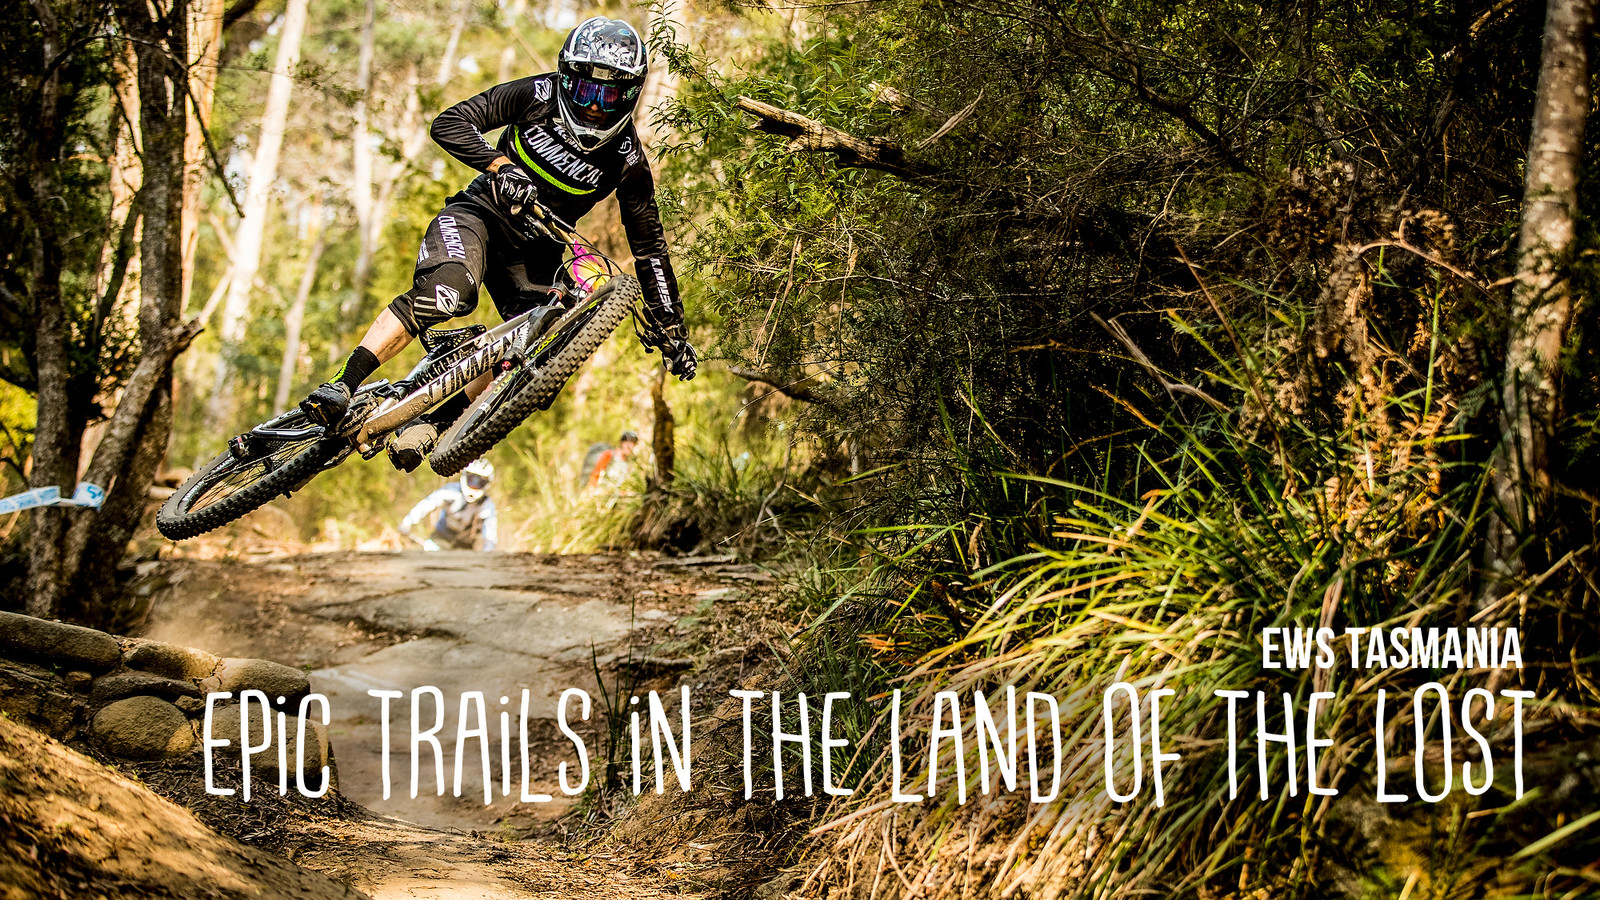 Epic Trails in the Land of the Lost - Tasmania Enduro World Series